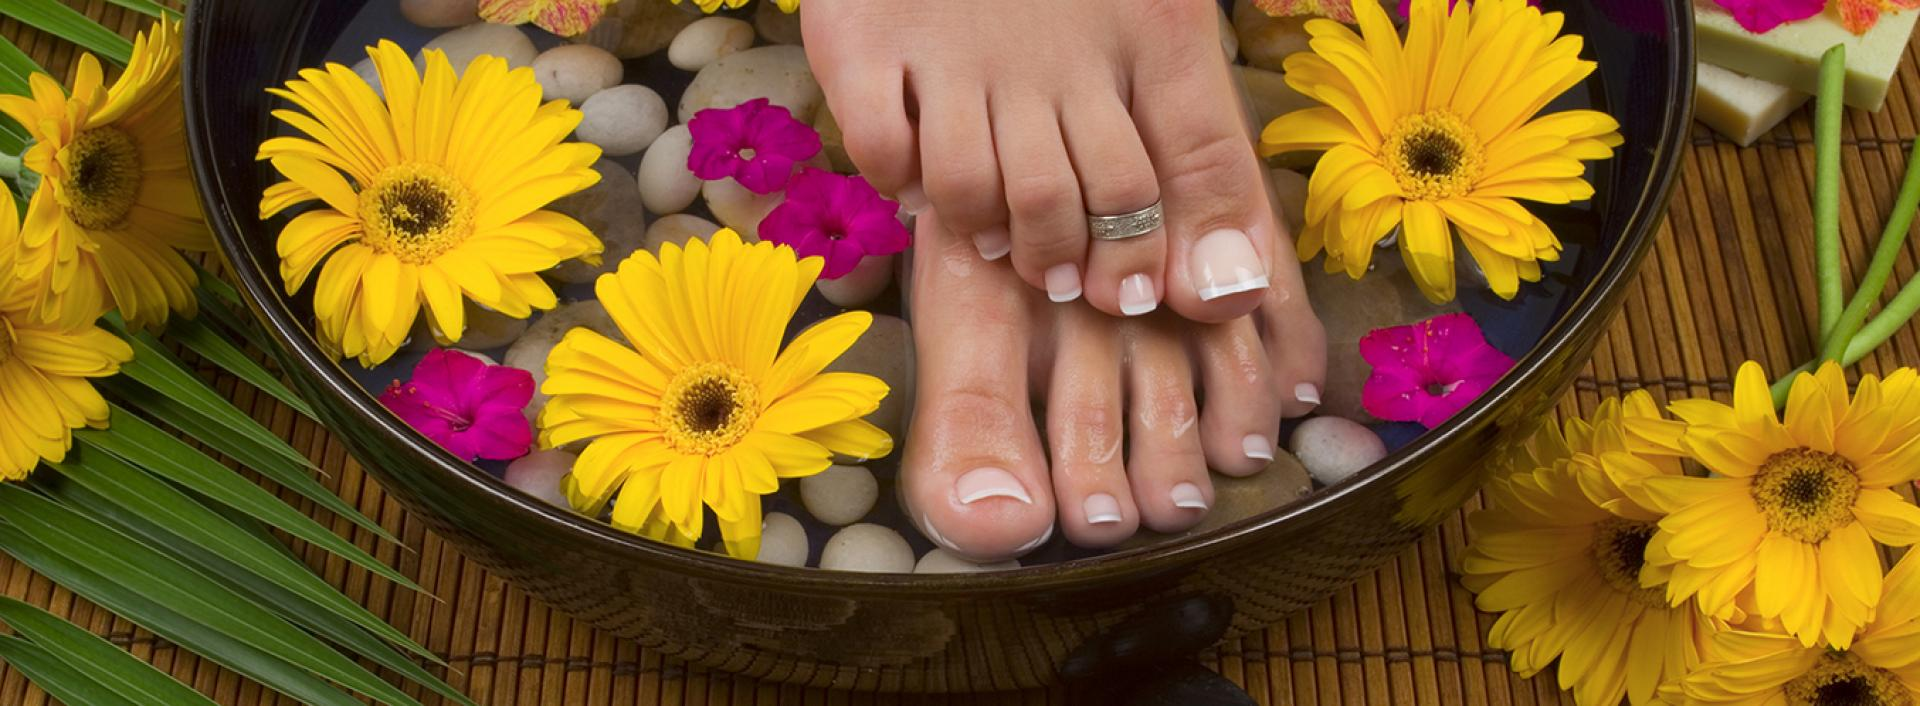 Envy Nails and Spa - Nail salon in San Diego, CA 92123